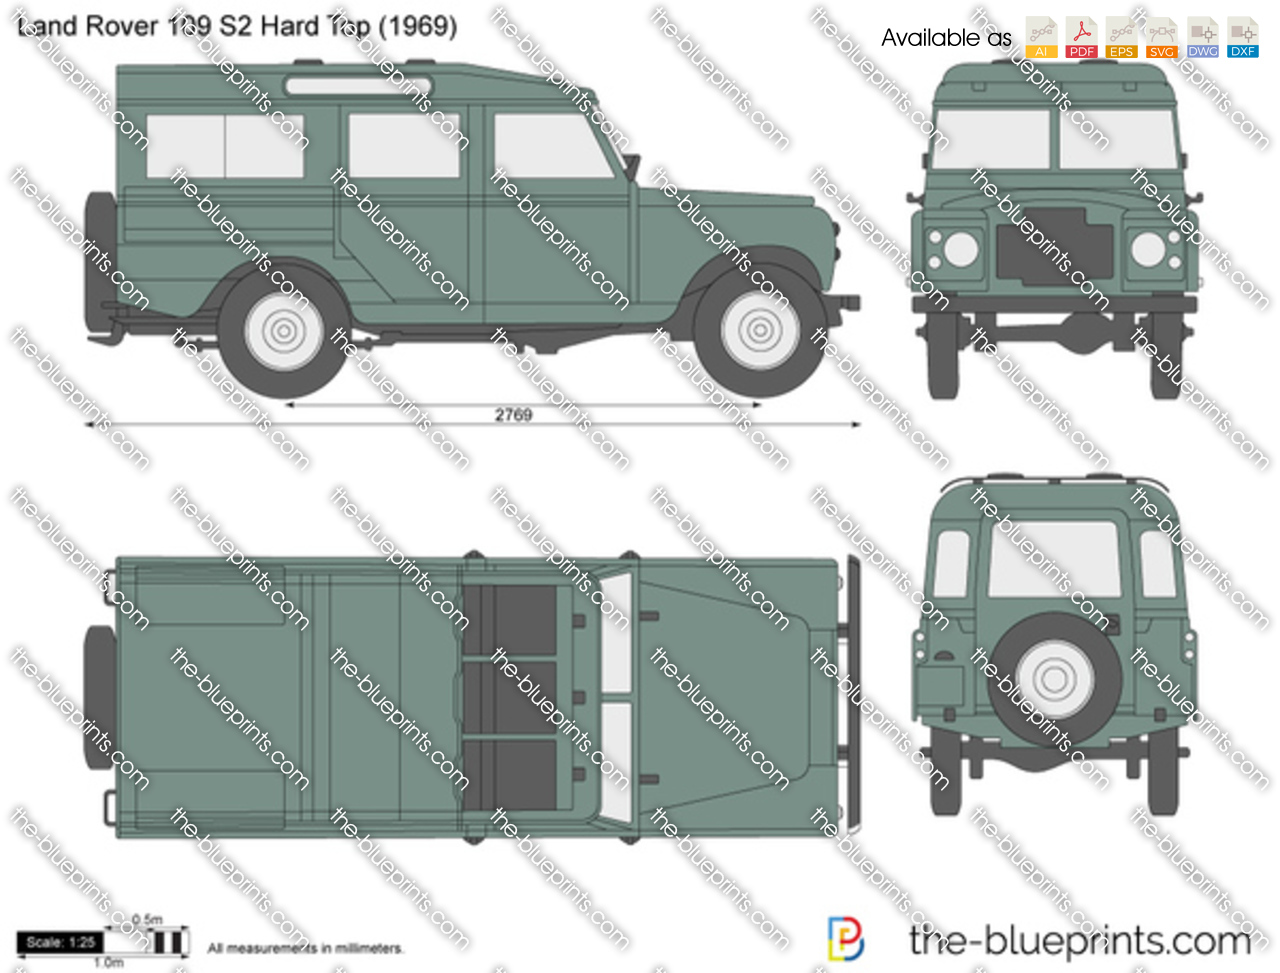 Land Rover 109 S2 Hard Top 1965